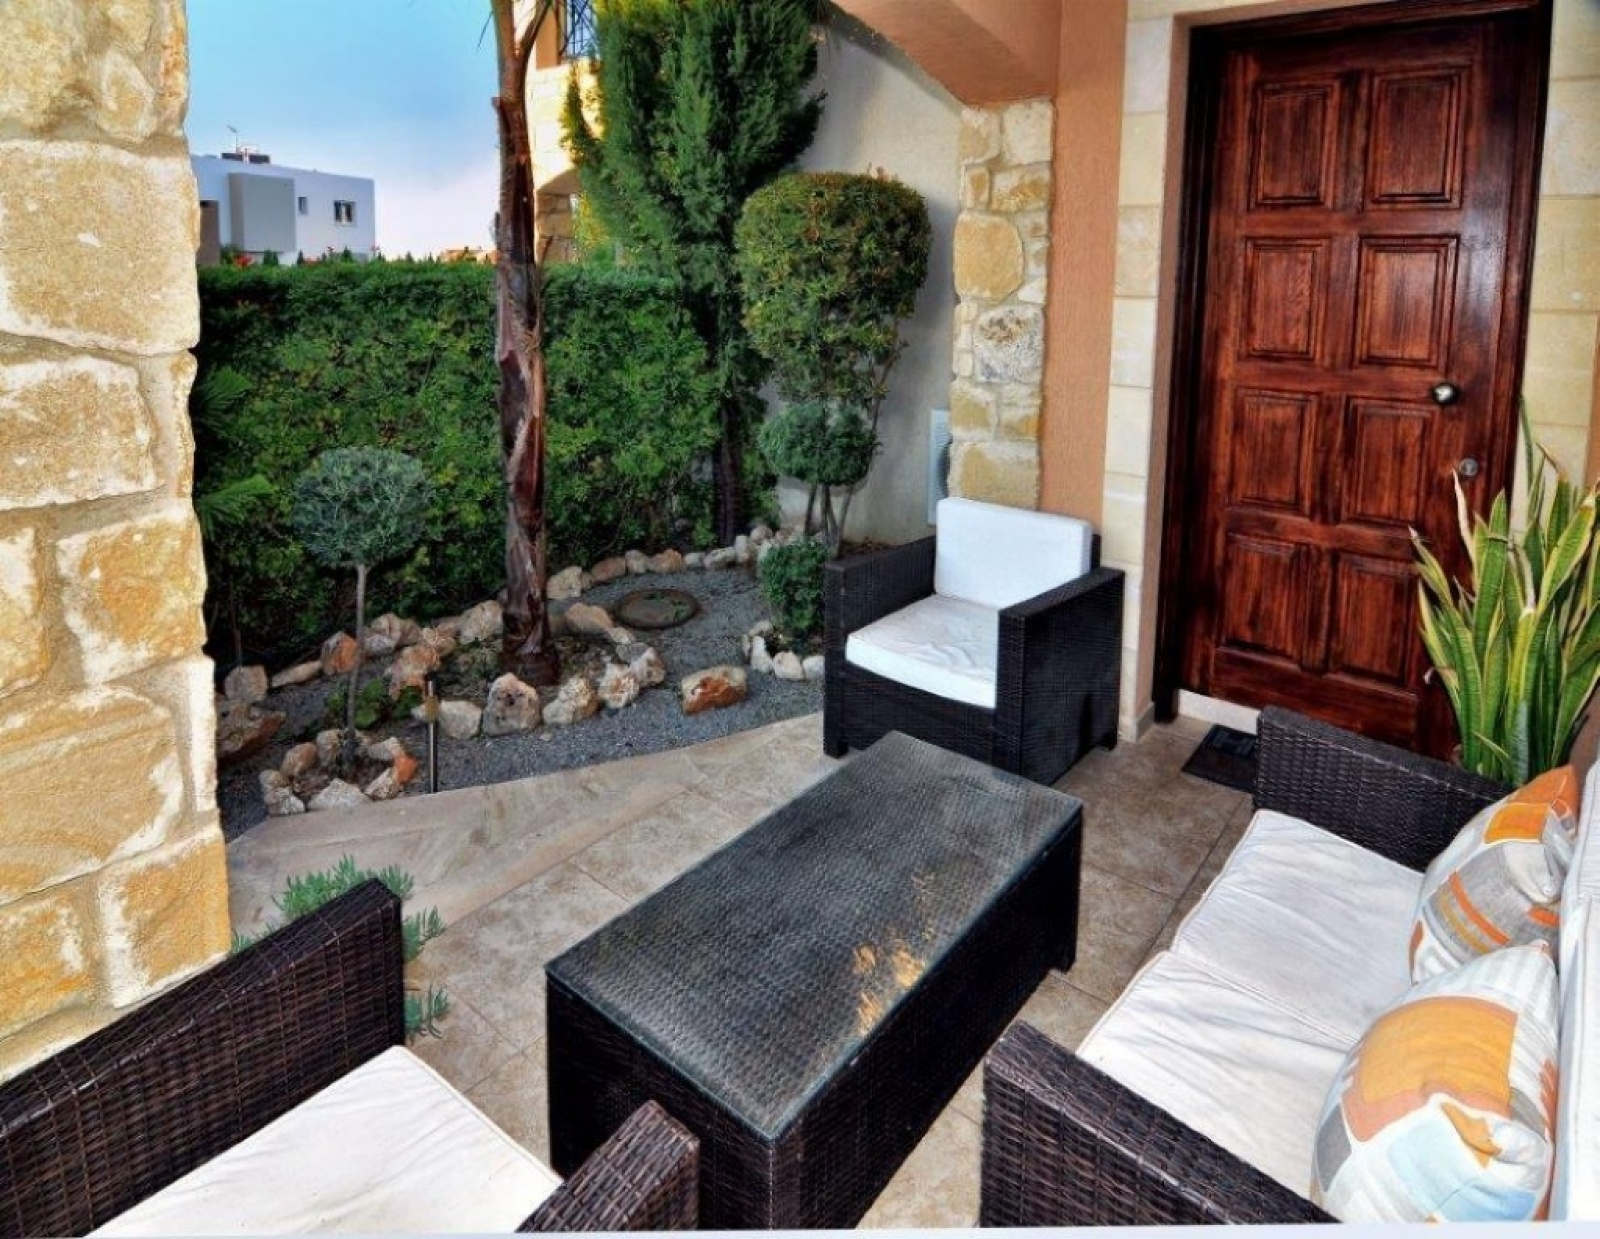 Residential Town House - 2bed Prodromi Town House for Sale